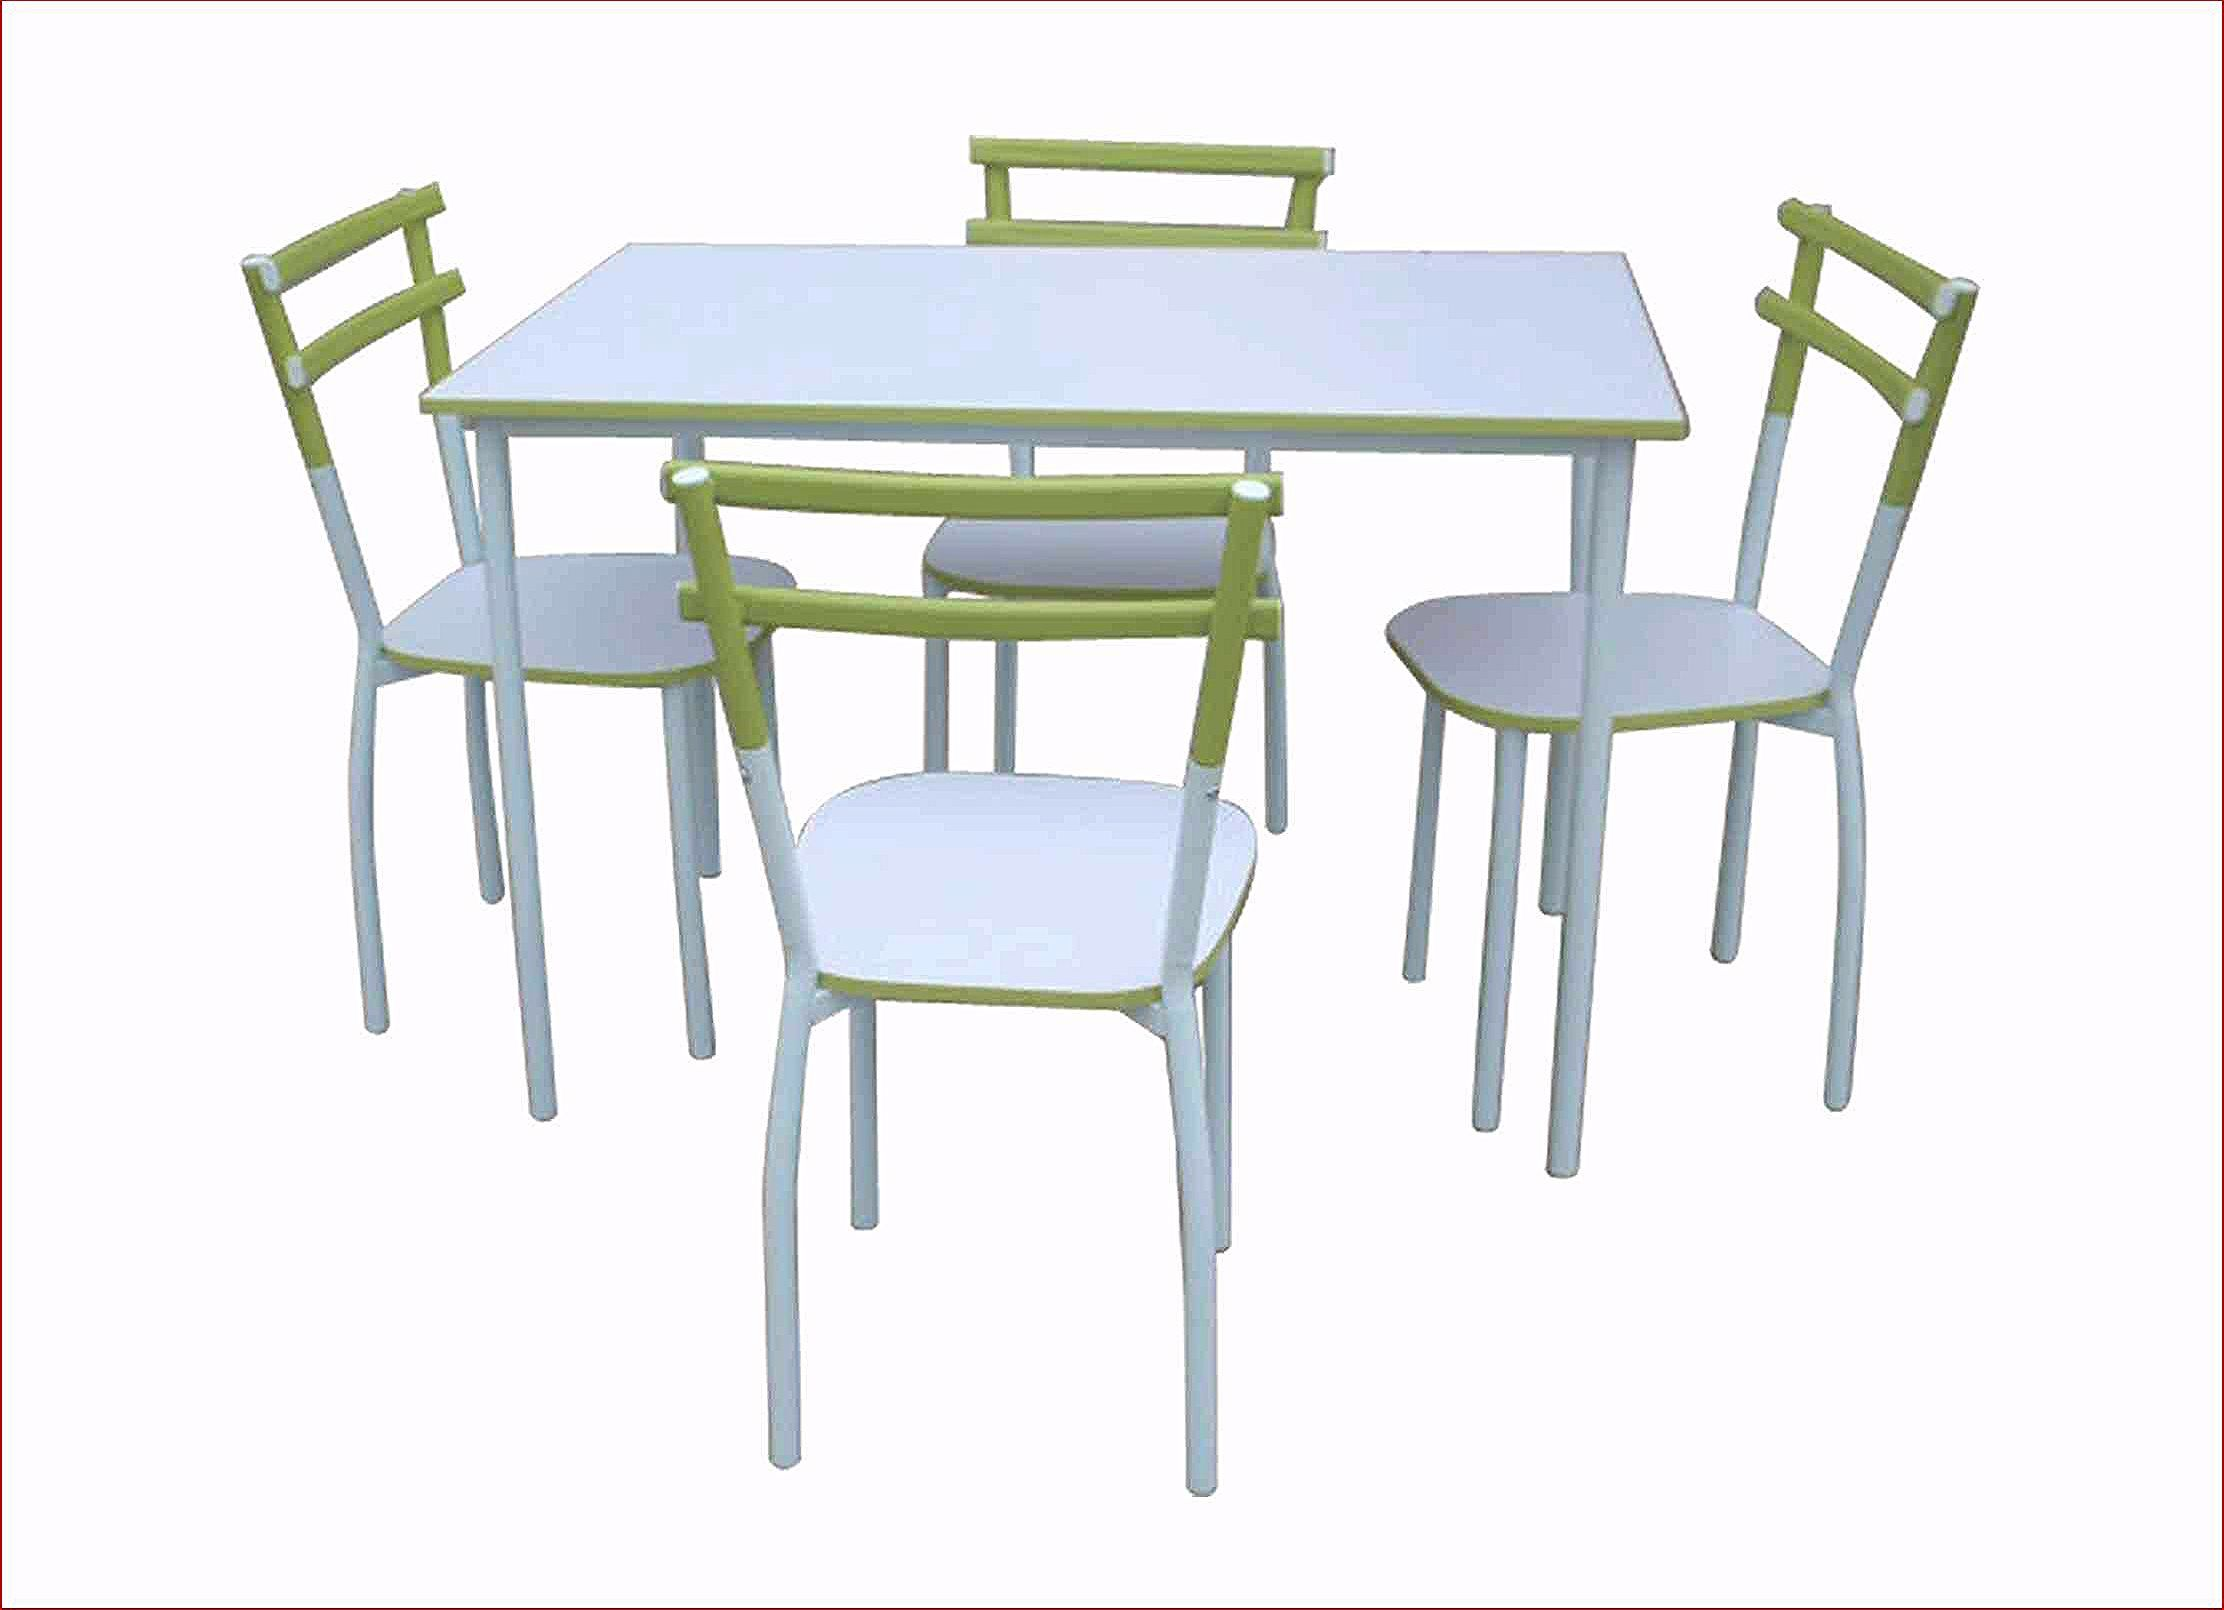 Ensemble Table Et Chaise De Cuisine Pas Cher Nouveau Chaise En Rotin Pas Chere Tags Chaise En In 2020 Modern Dining Chairs Upholstered Dining Chairs Modern Dining